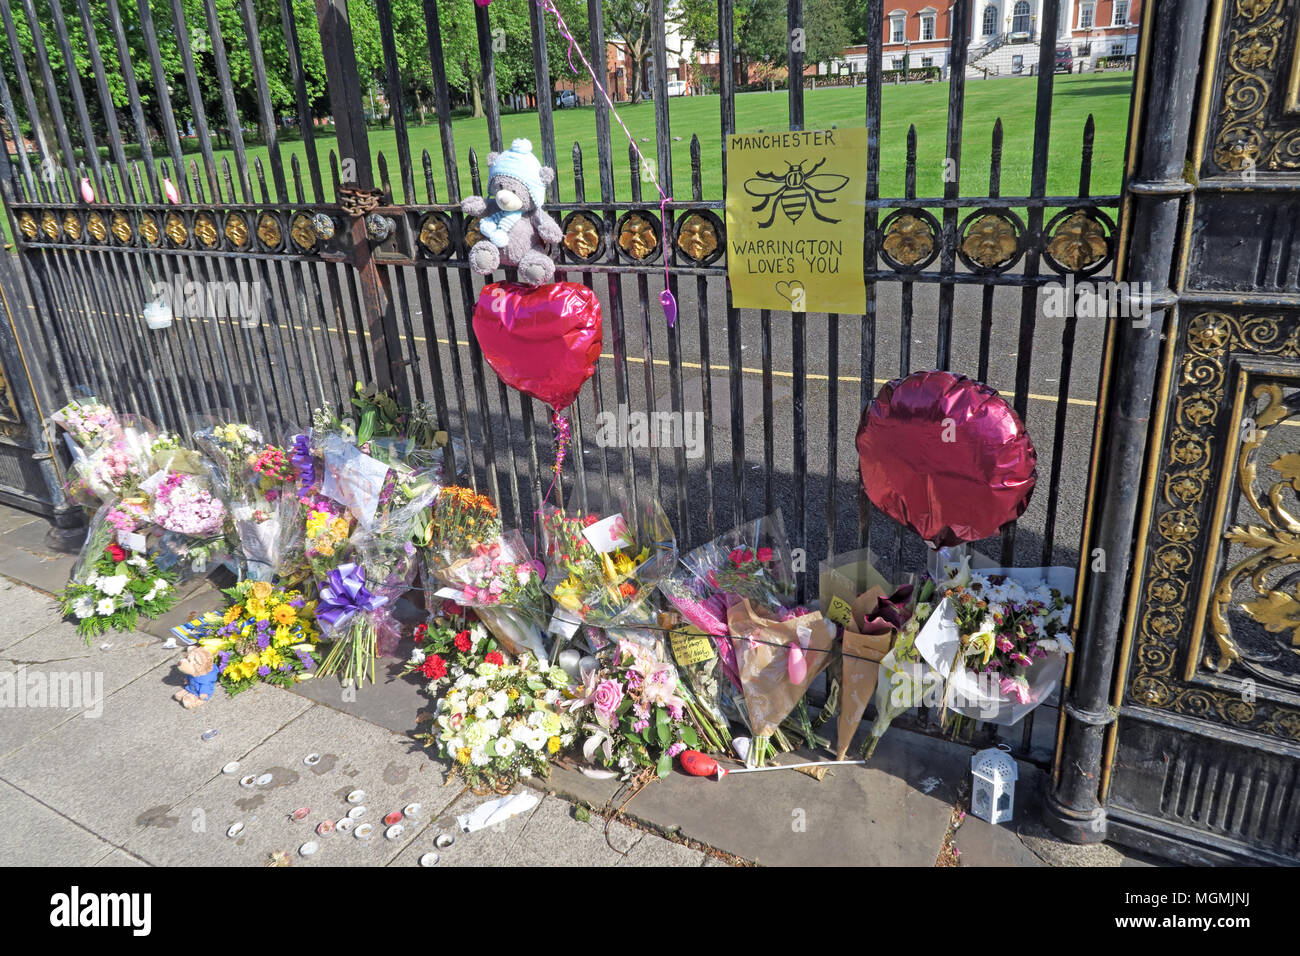 GoTonySmith,gate,after Manchester Bombing,aftermath,killed,maimed,2017,flowers,memorial,injured,Warrington Loves Manchester,Arena,Bomb,Bombing,Sankey St,balloons,balloon,sad,ceremony,prayers,people,united,uniting,coming together,community in shock,townhall,town hall,hall,WBC,gold,iron,work,iron work,bee,bee symbol,toys,left,bear,emotion